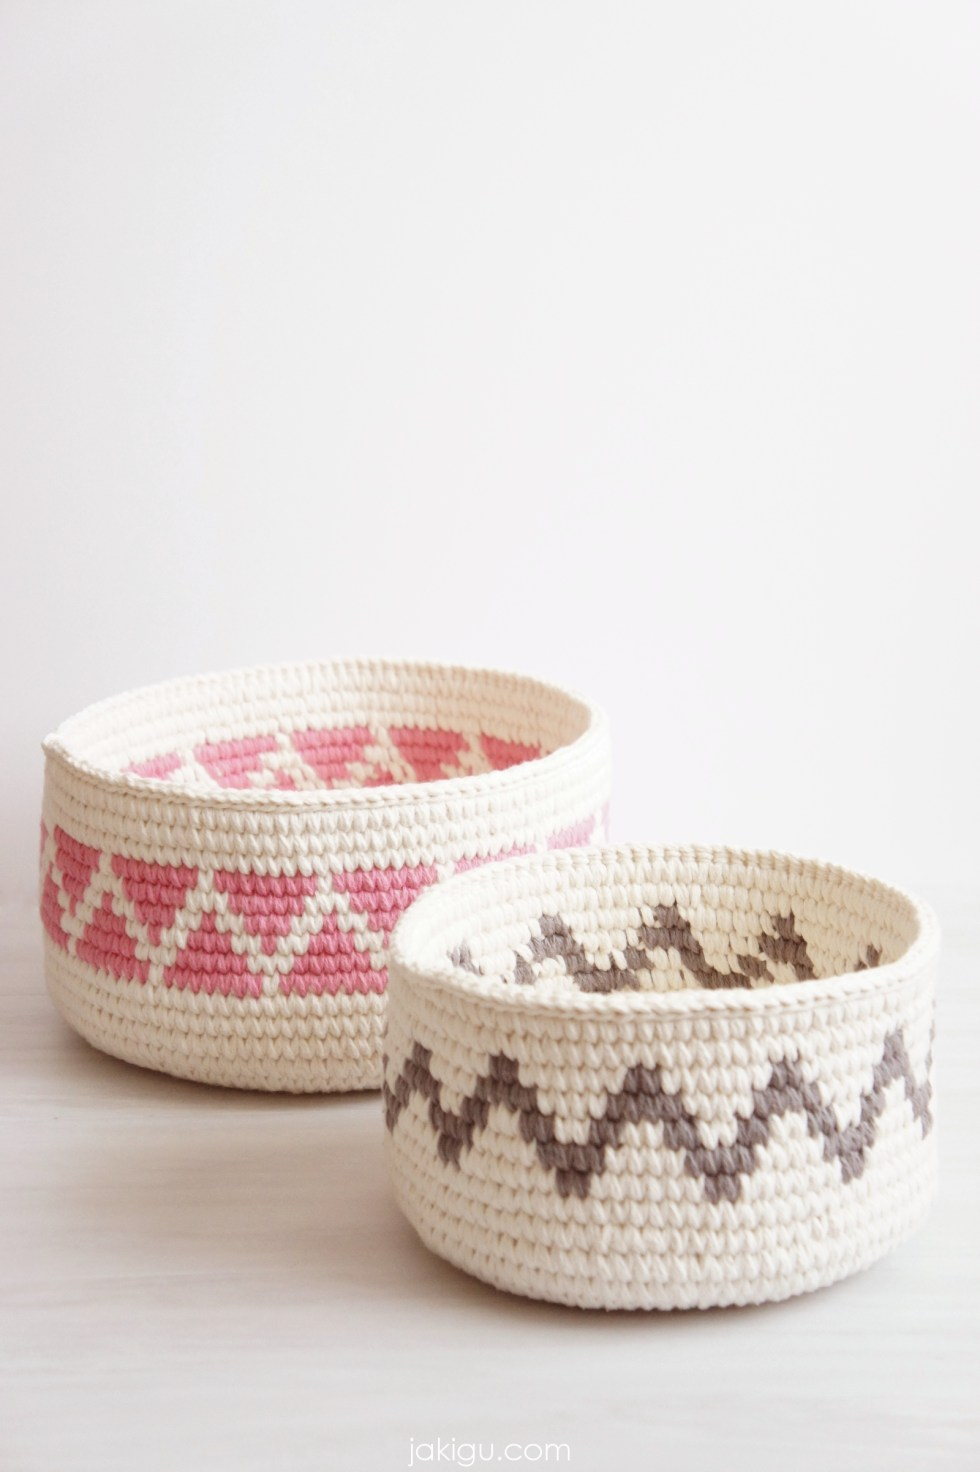 Geometric crochet baskets / Crochet triangles and chevron / Sturdy Crochet baskets / jakigu.com